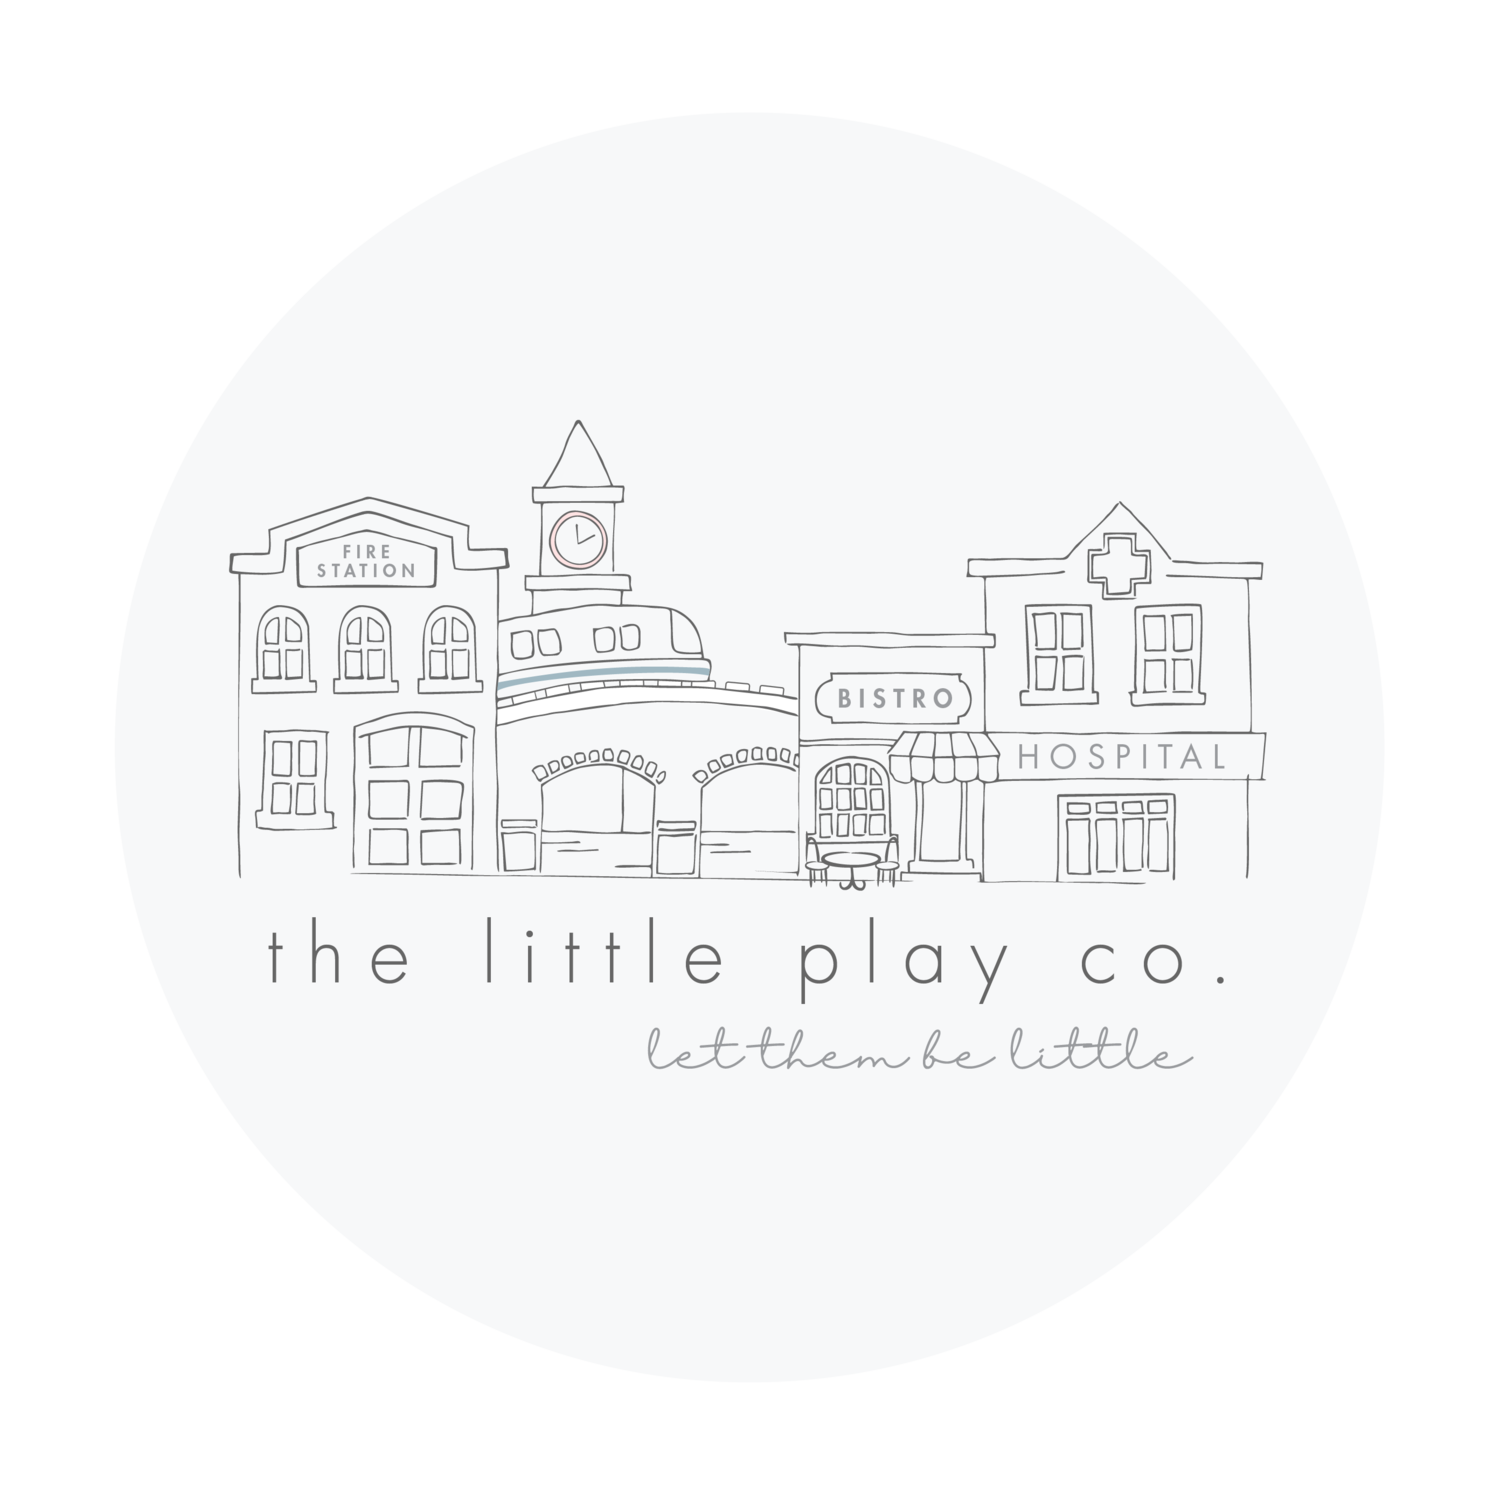 the little play co.